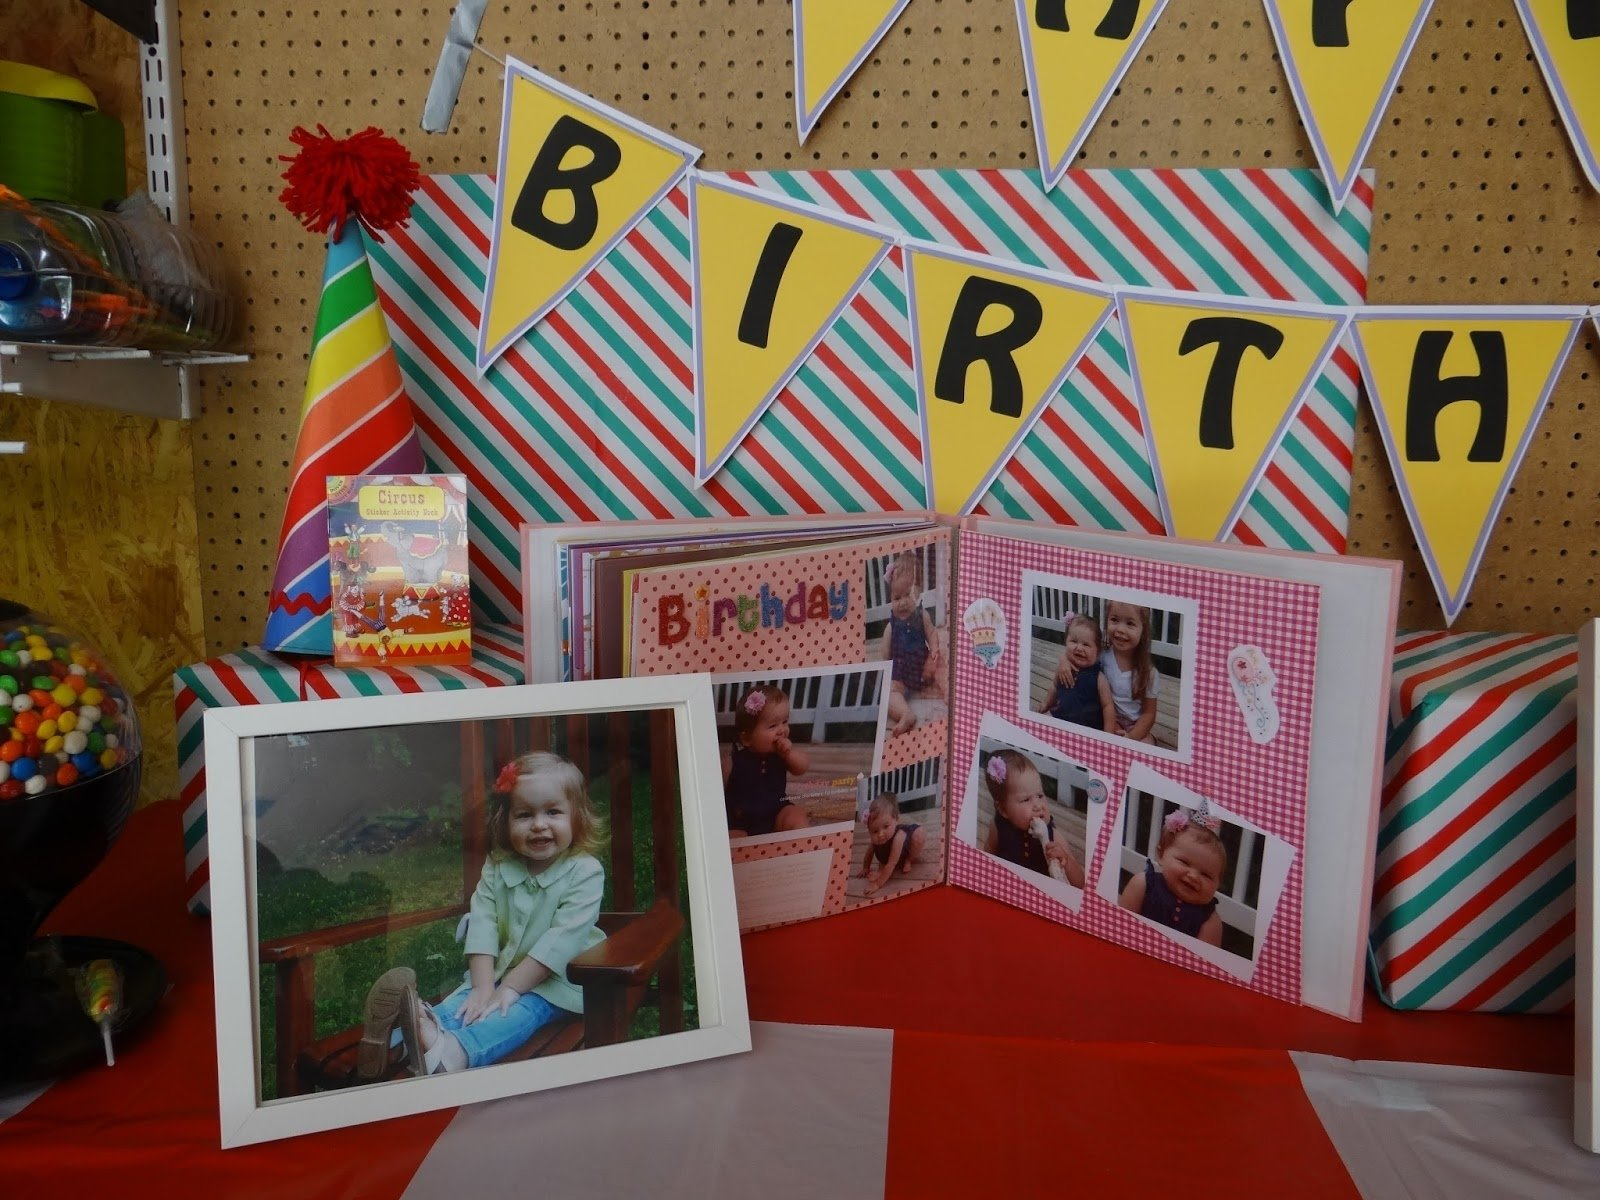 10 Wonderful Birthday Party Ideas For 11 Year Old Boy busy hands blessed hearts carnival 2 year old birthday party 2020